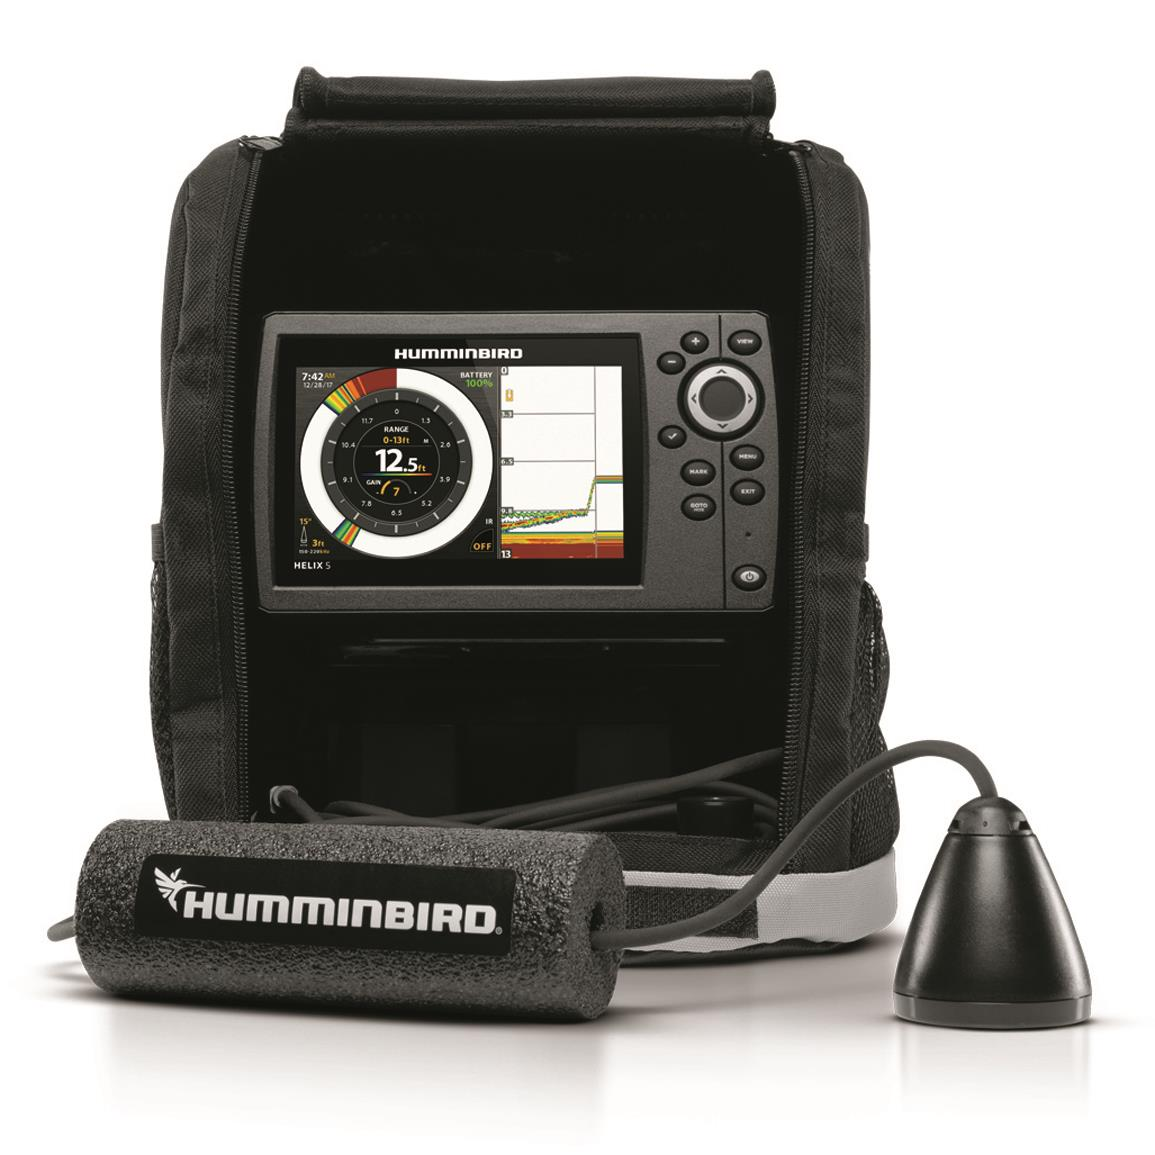 humminbird ice helix 5 chirp gps g2 sonar fish finder 703271 ice fishing electronics at. Black Bedroom Furniture Sets. Home Design Ideas